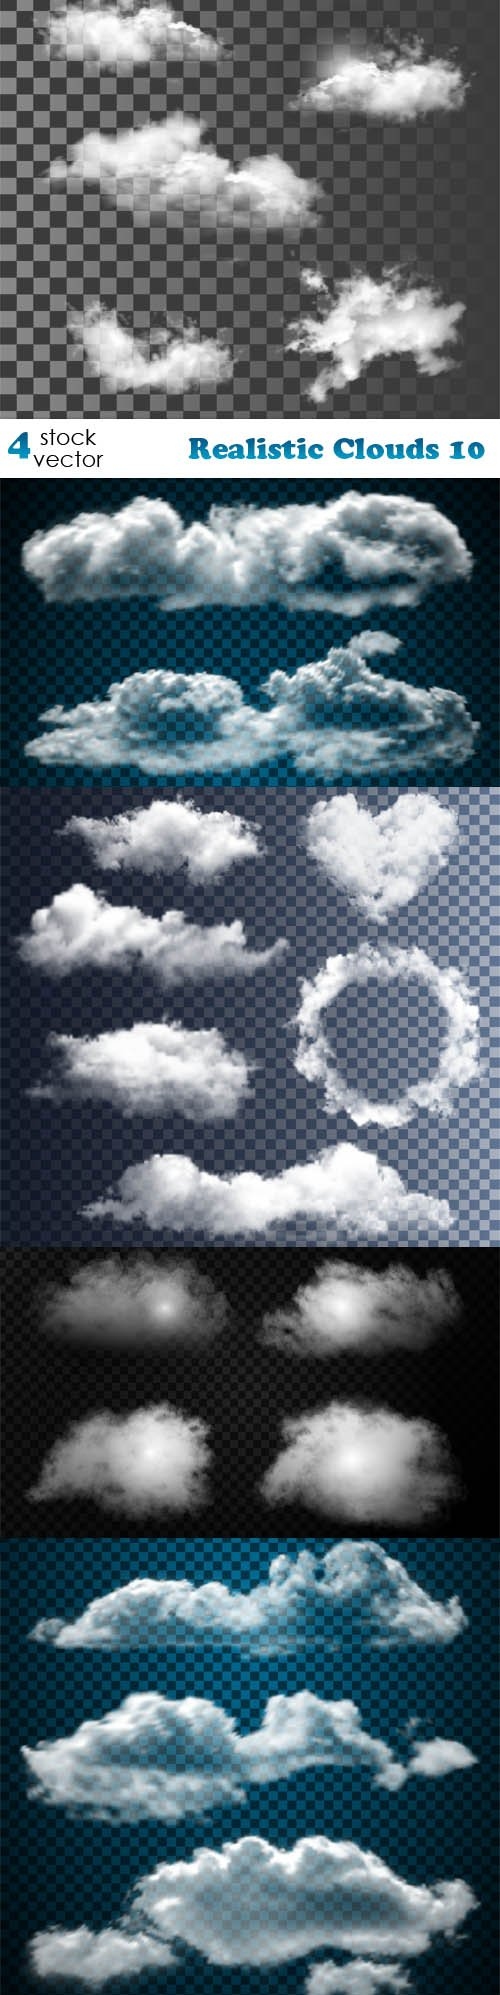 Vectors - Realistic Clouds 10